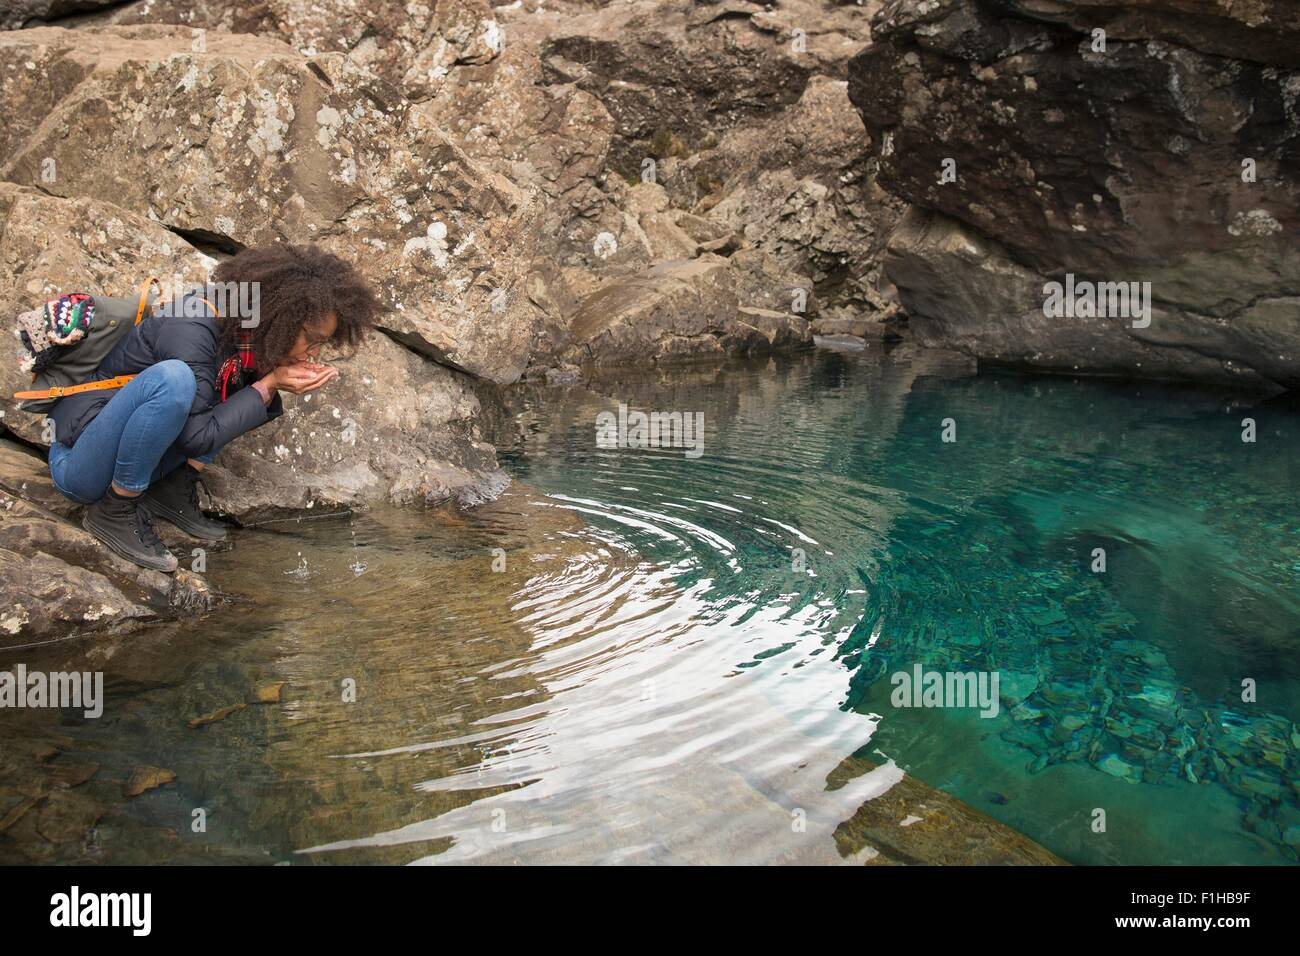 Woman drinking water from cupped hands, Fairy Pools, Isle of Skye, Hebrides, Scotland - Stock Image